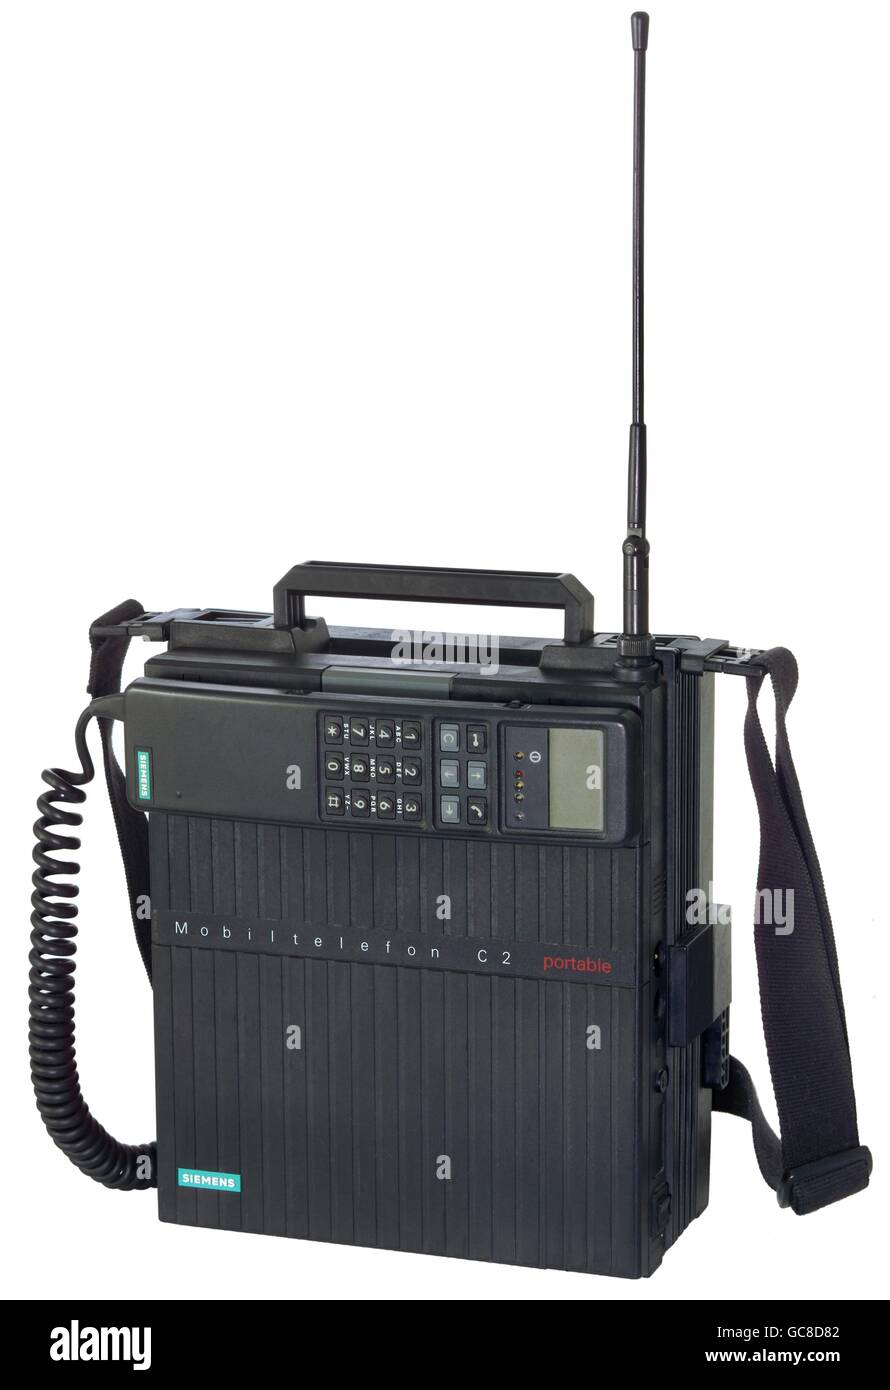 technics, telephone, mobile phone, Siemens mobile phone C2, one of the very first C network mobile phone, portable - Stock Image